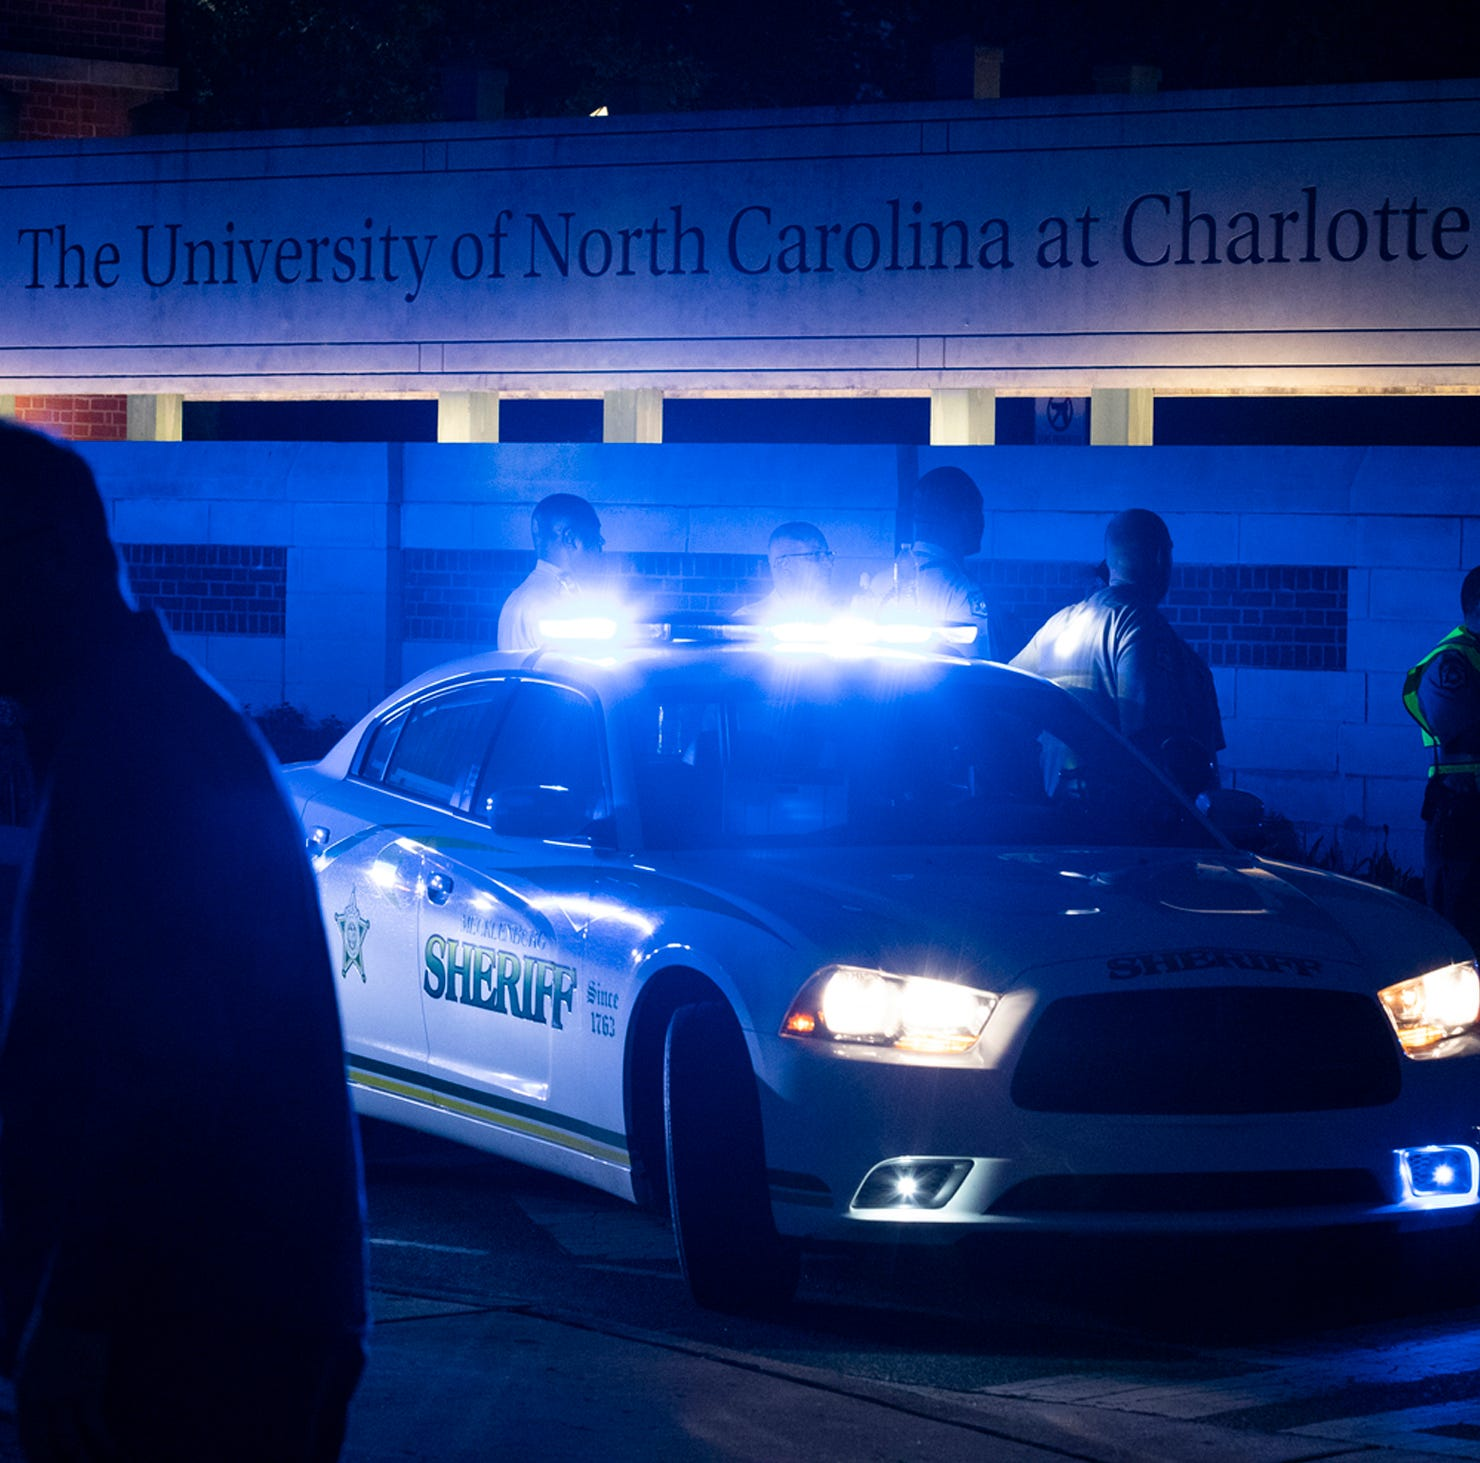 UNC Charlotte's 'worst day': Former student kills 2, injures 4 in shooting at North Carolina university